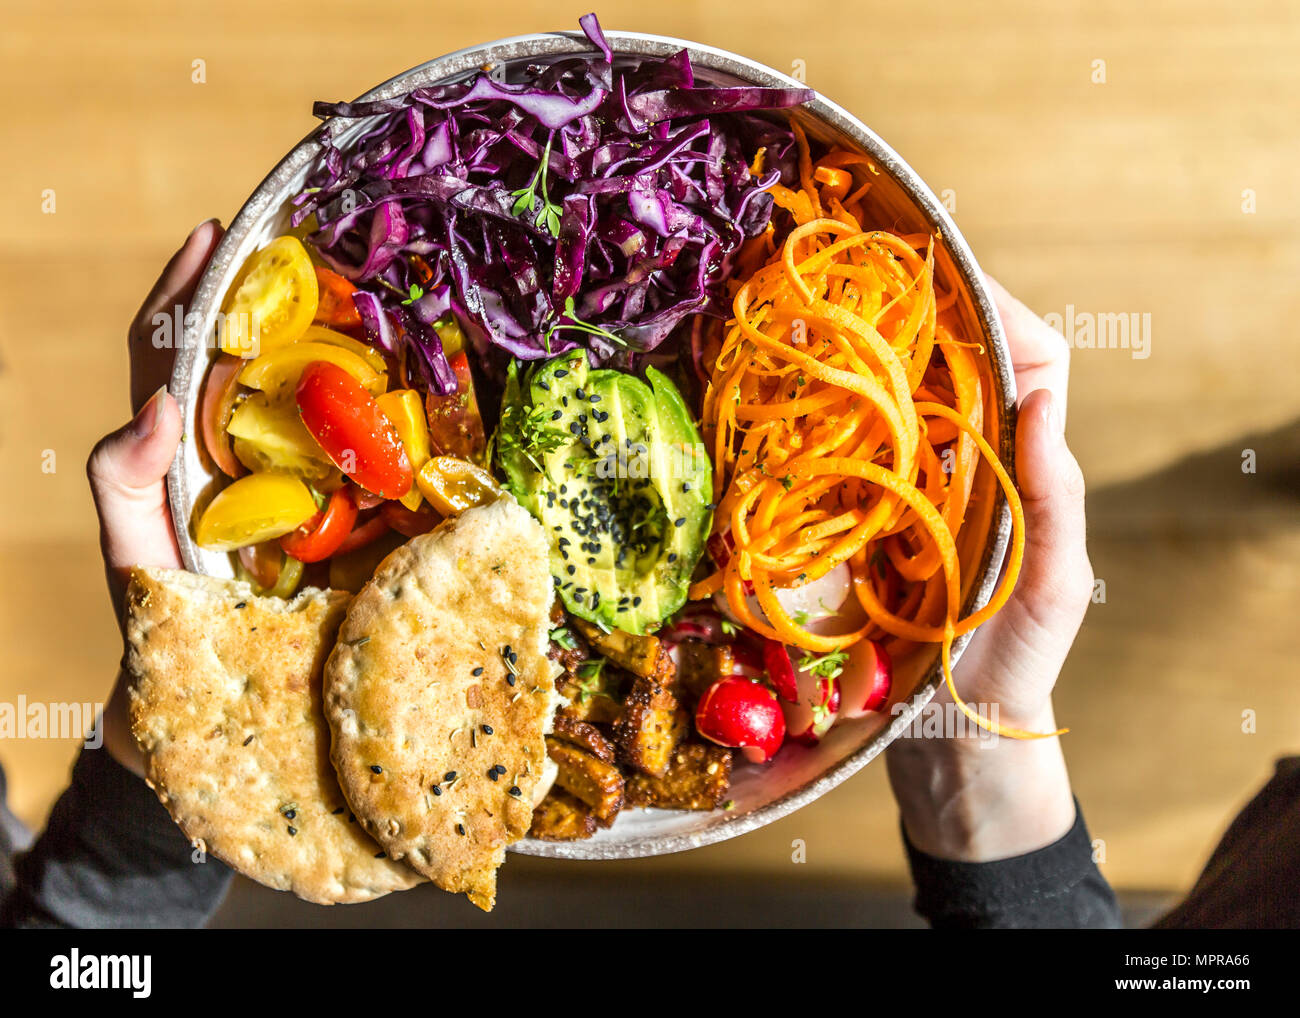 Girl holding veggie bowl with tomato, tofu, red cabbage, avocado, carrot, red redish, cress, black sesame and pita bread - Stock Image